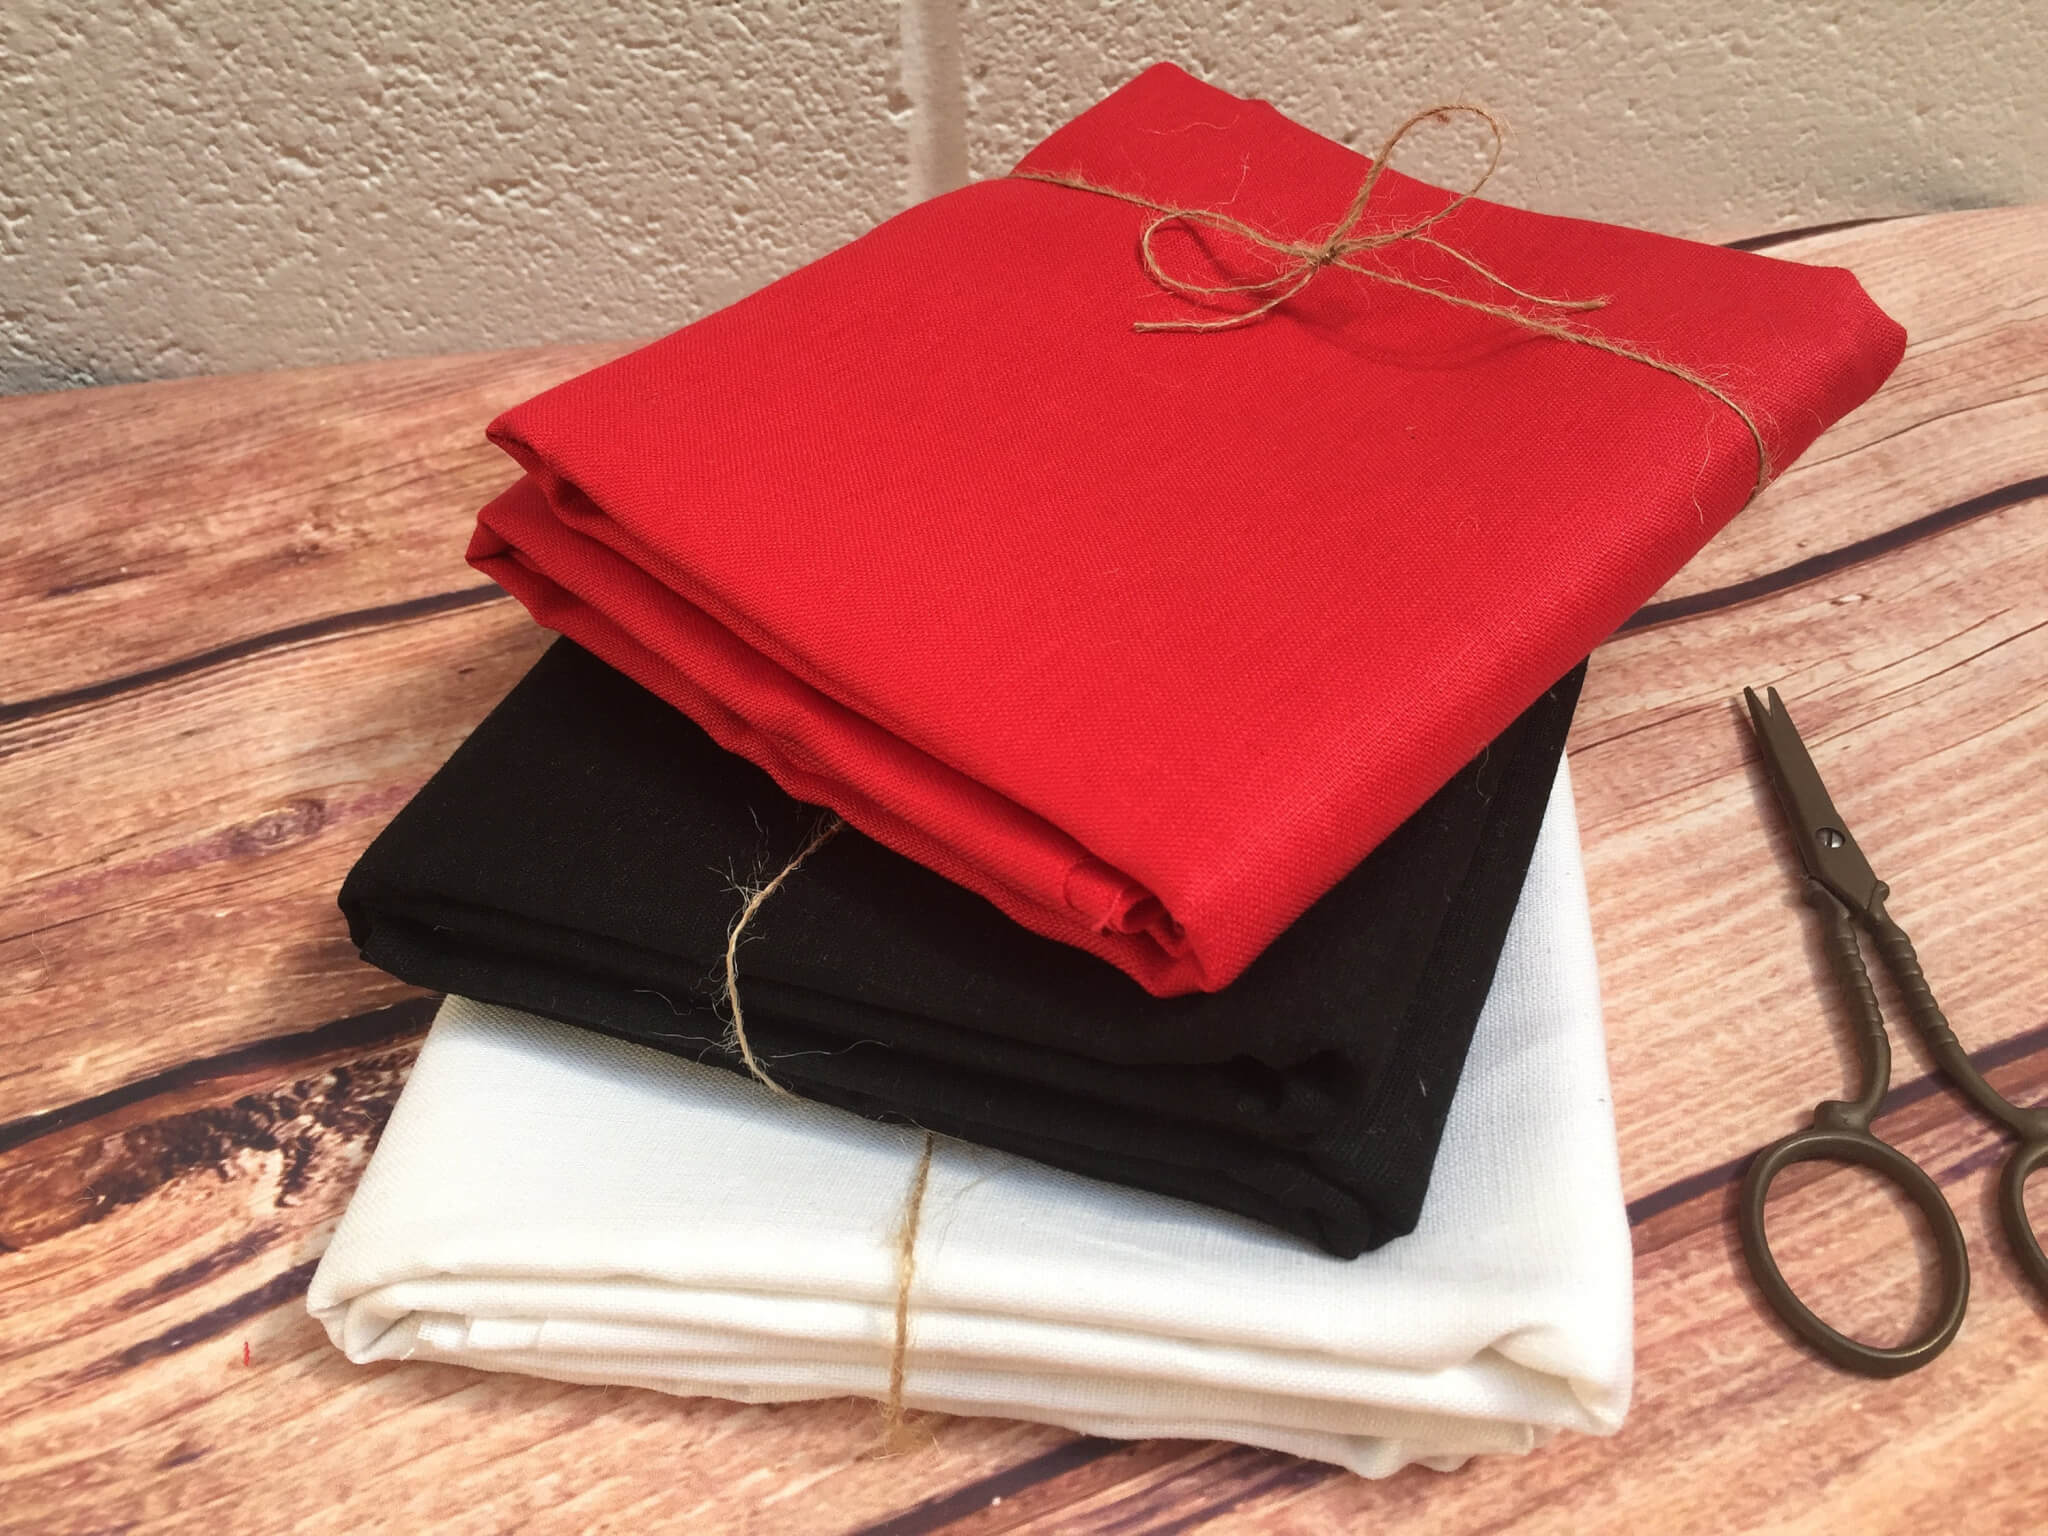 soft-linen-fabric-material-100-linens-textile-for-home-decor-curtains-clothes-140cm-wide-plain-red-5d73eed01.jpg